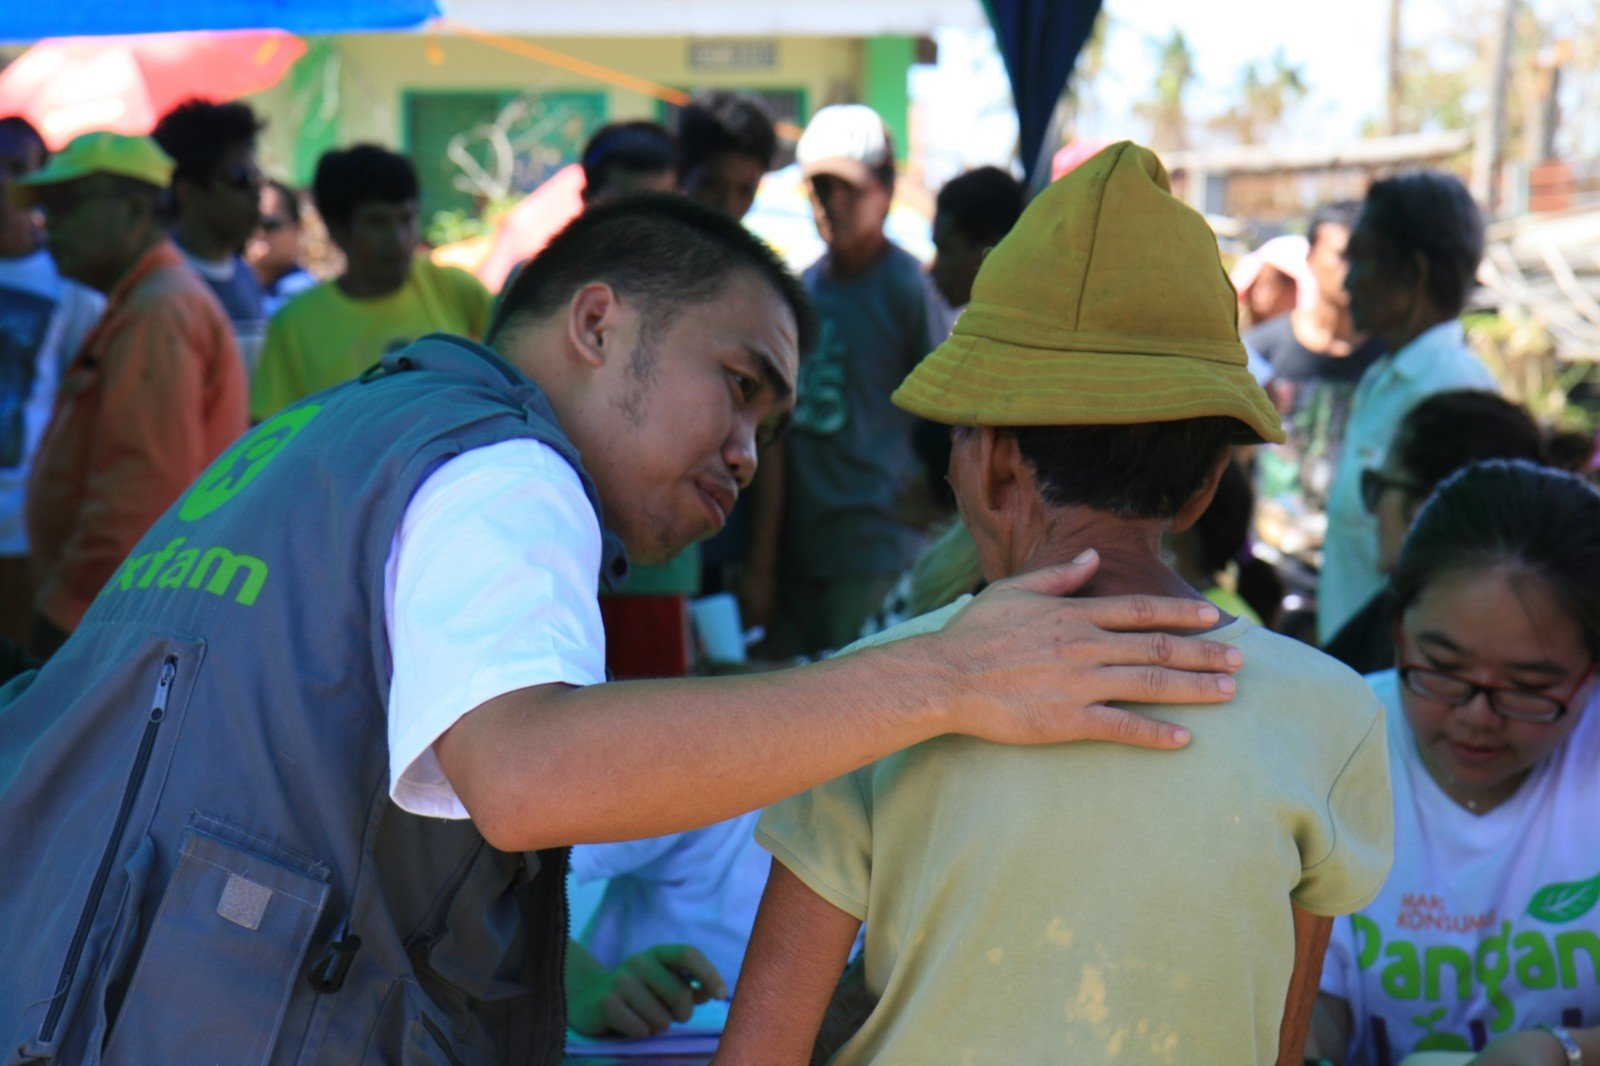 Oxfam staff Vincent Malasador gives support and reassurance to recipient during the distribution of hygiene items in northern Cebu.